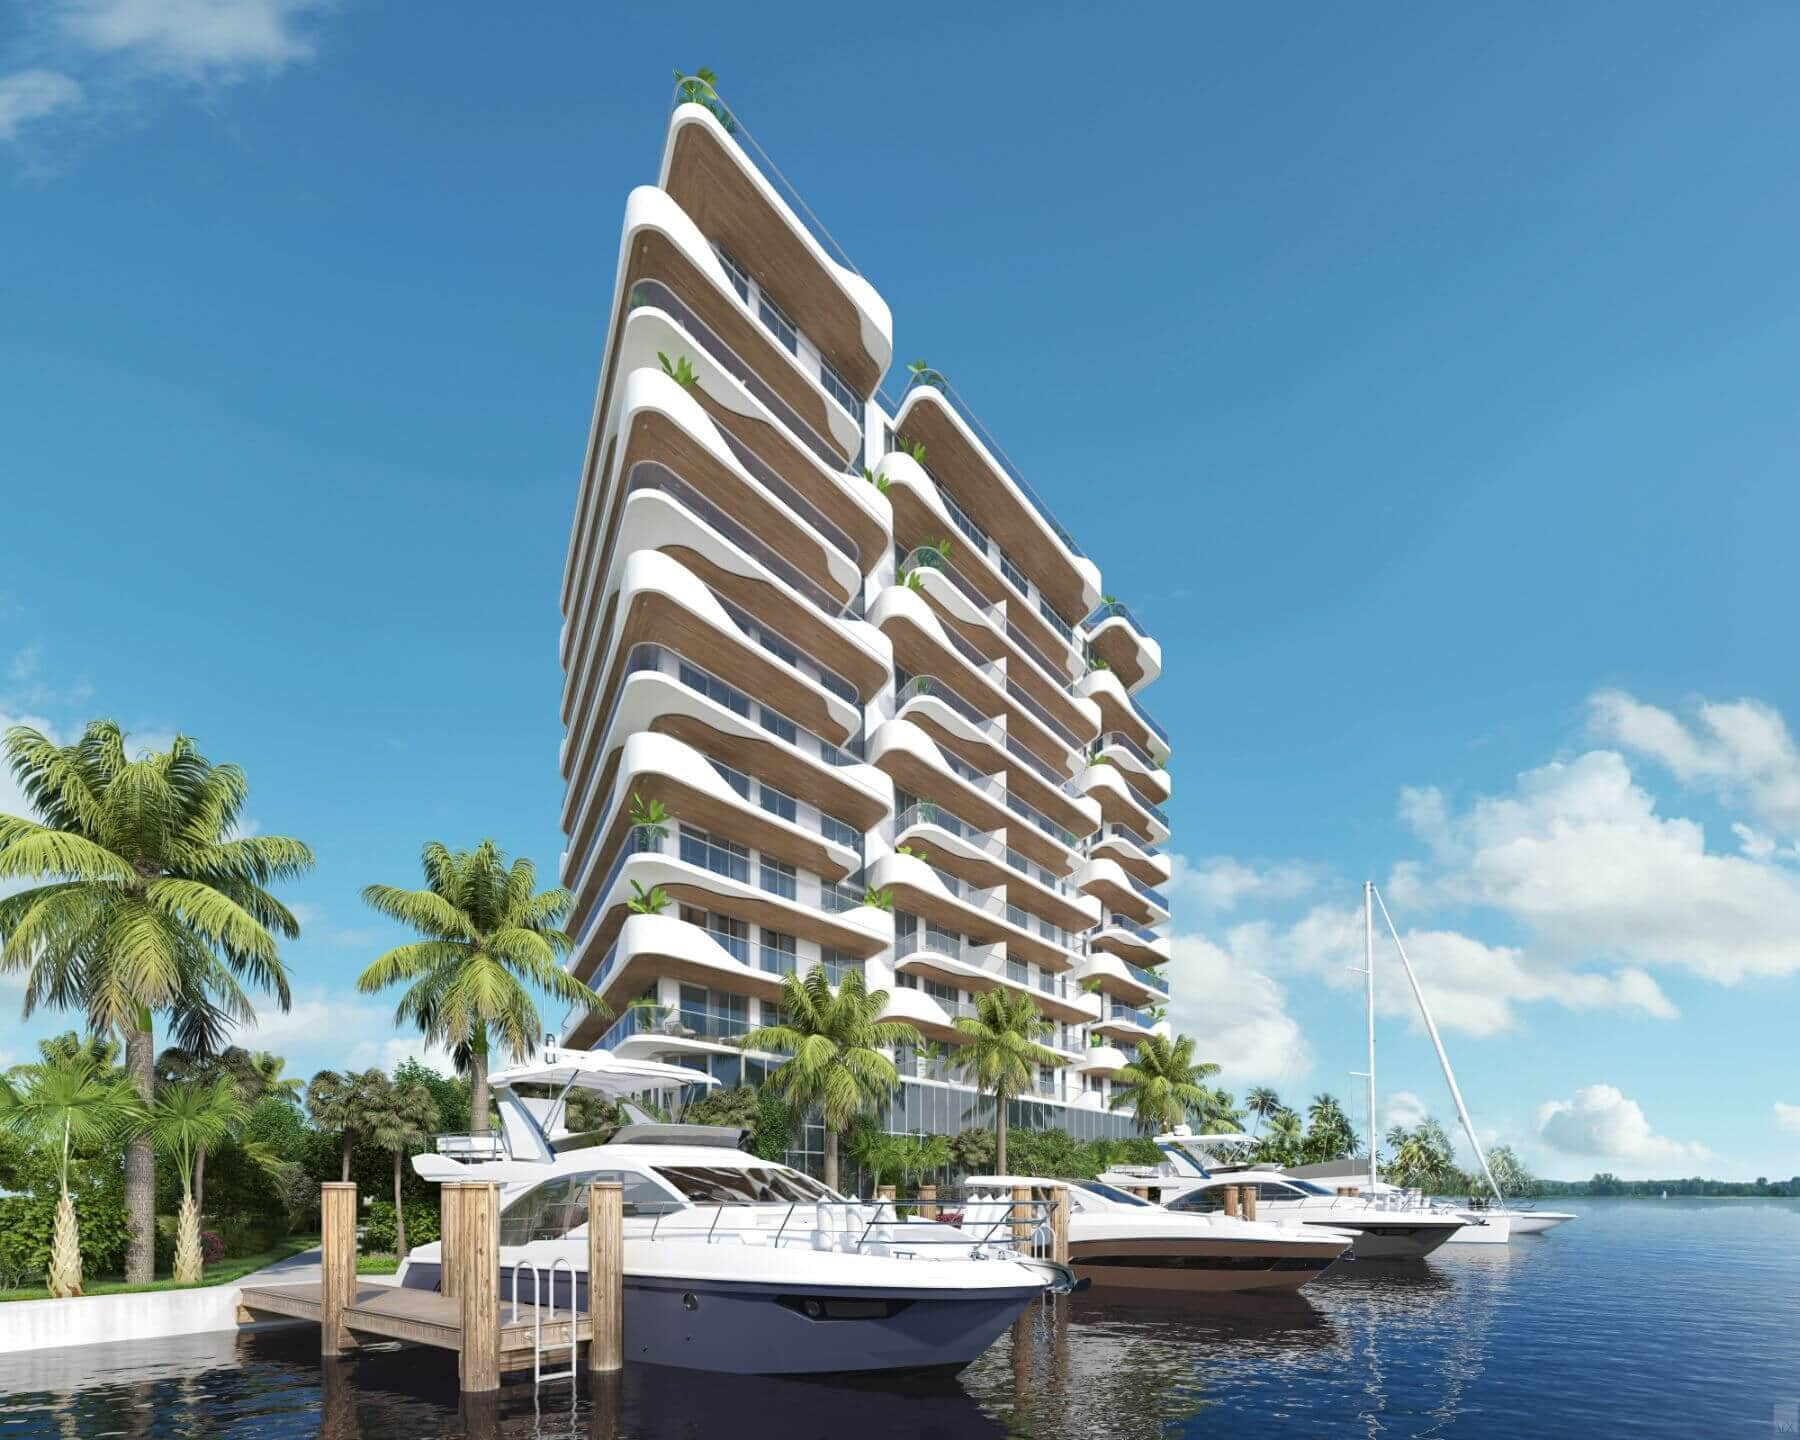 2 Monaco Yacht Club Residences